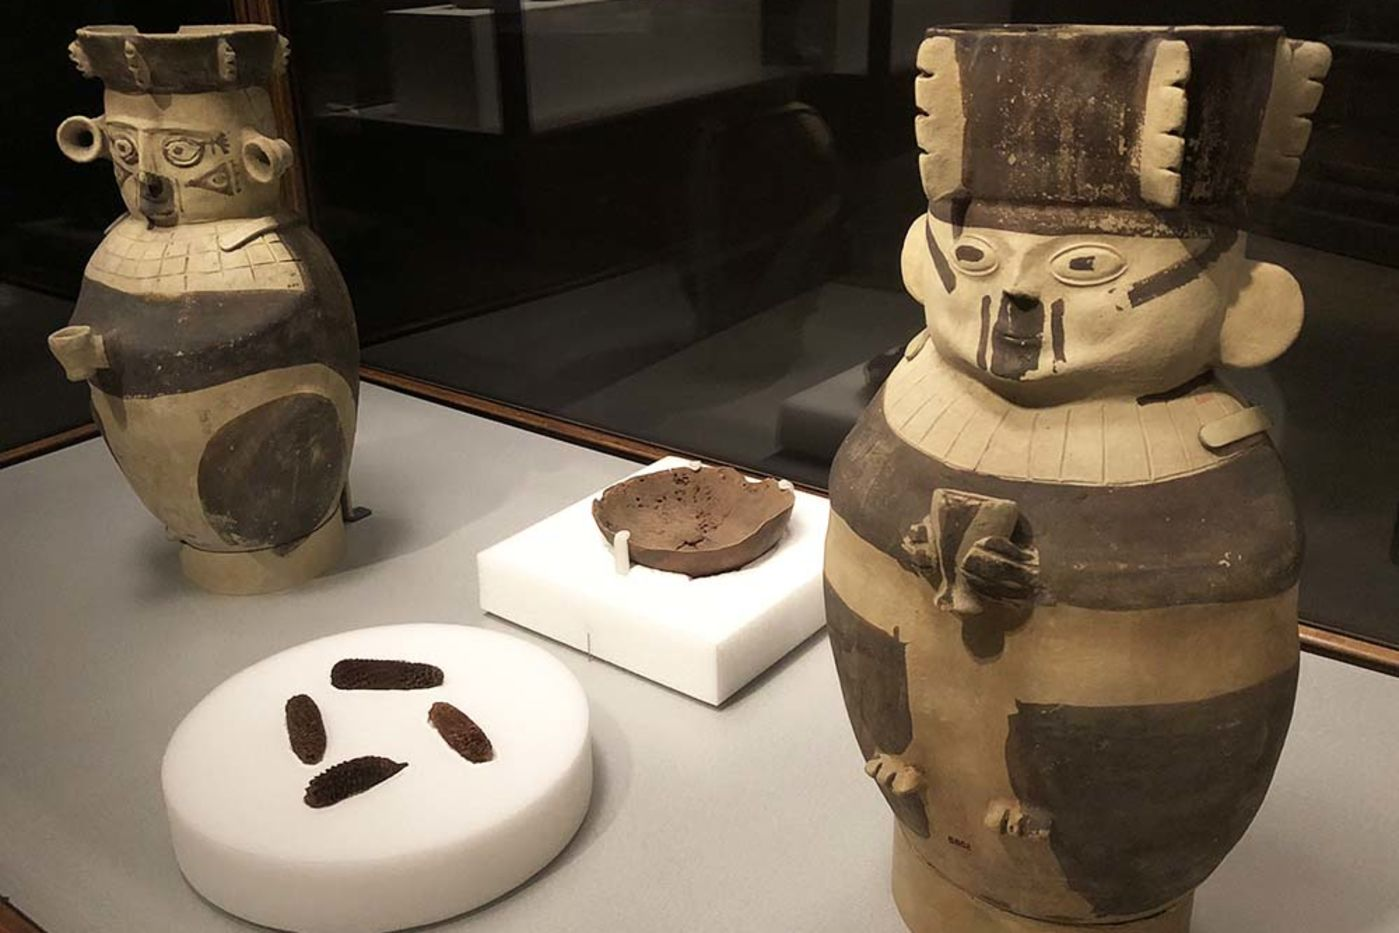 Two ceramic jugs in the shape of human figures holding small cups, painted with dark brown accents